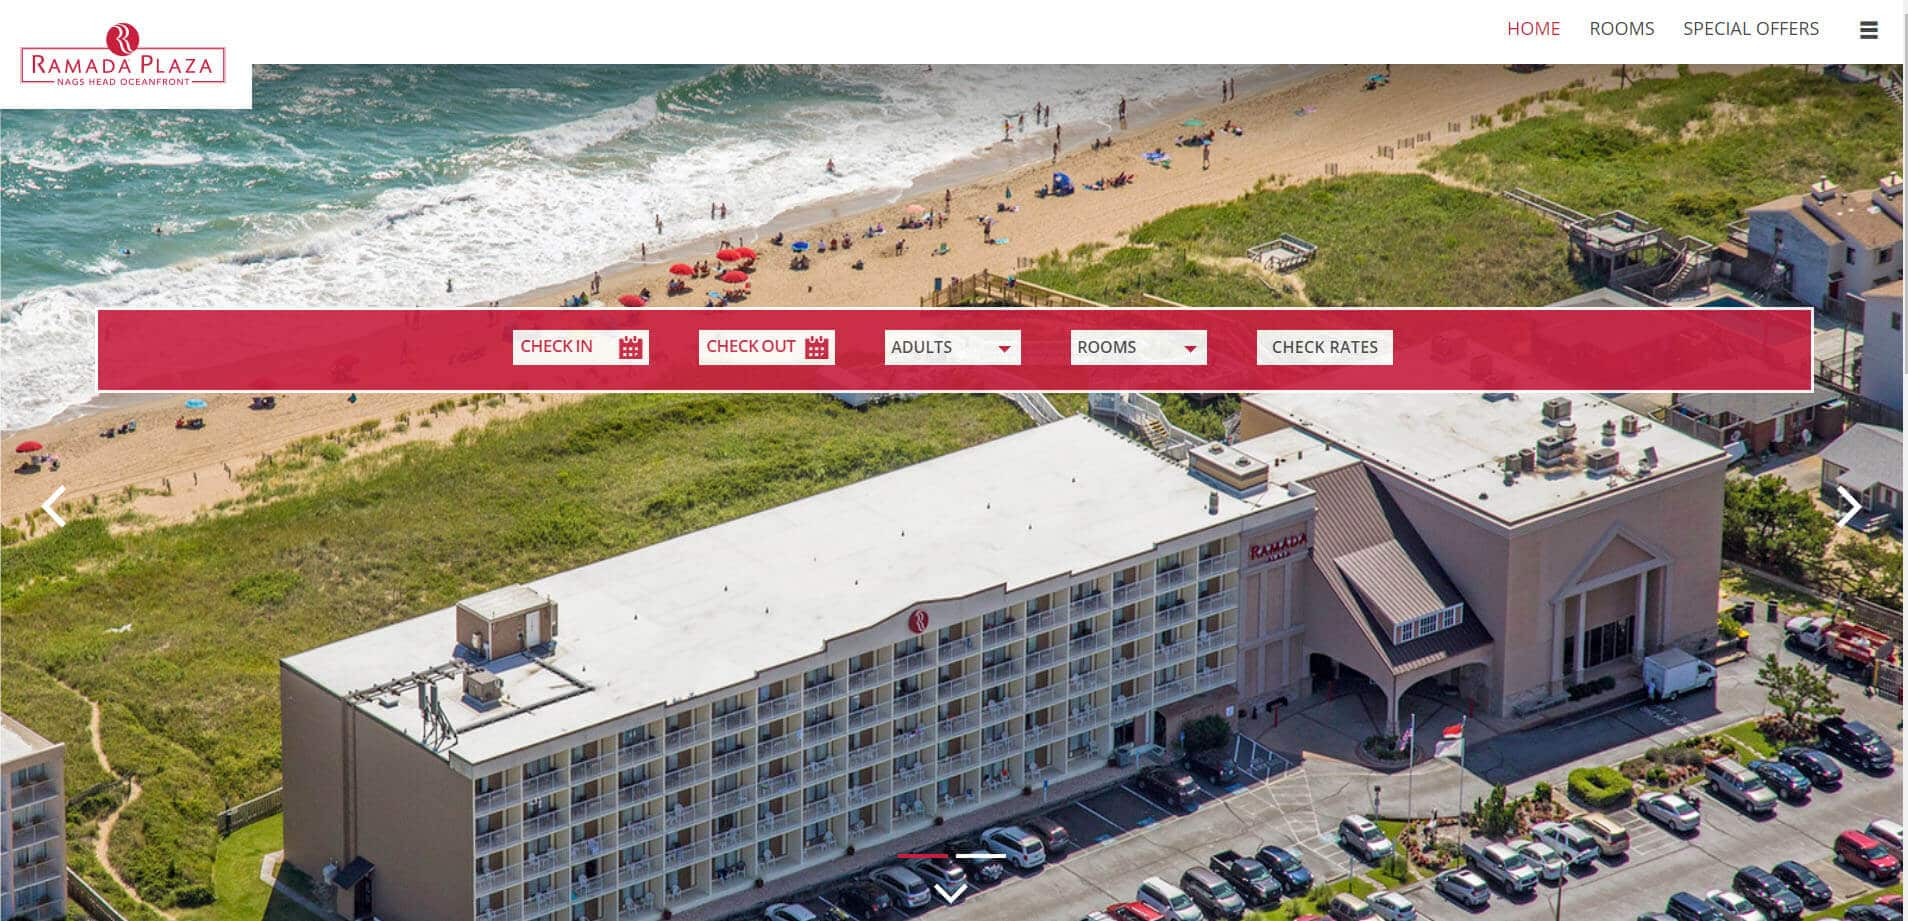 Ramada Plaza Nags Head